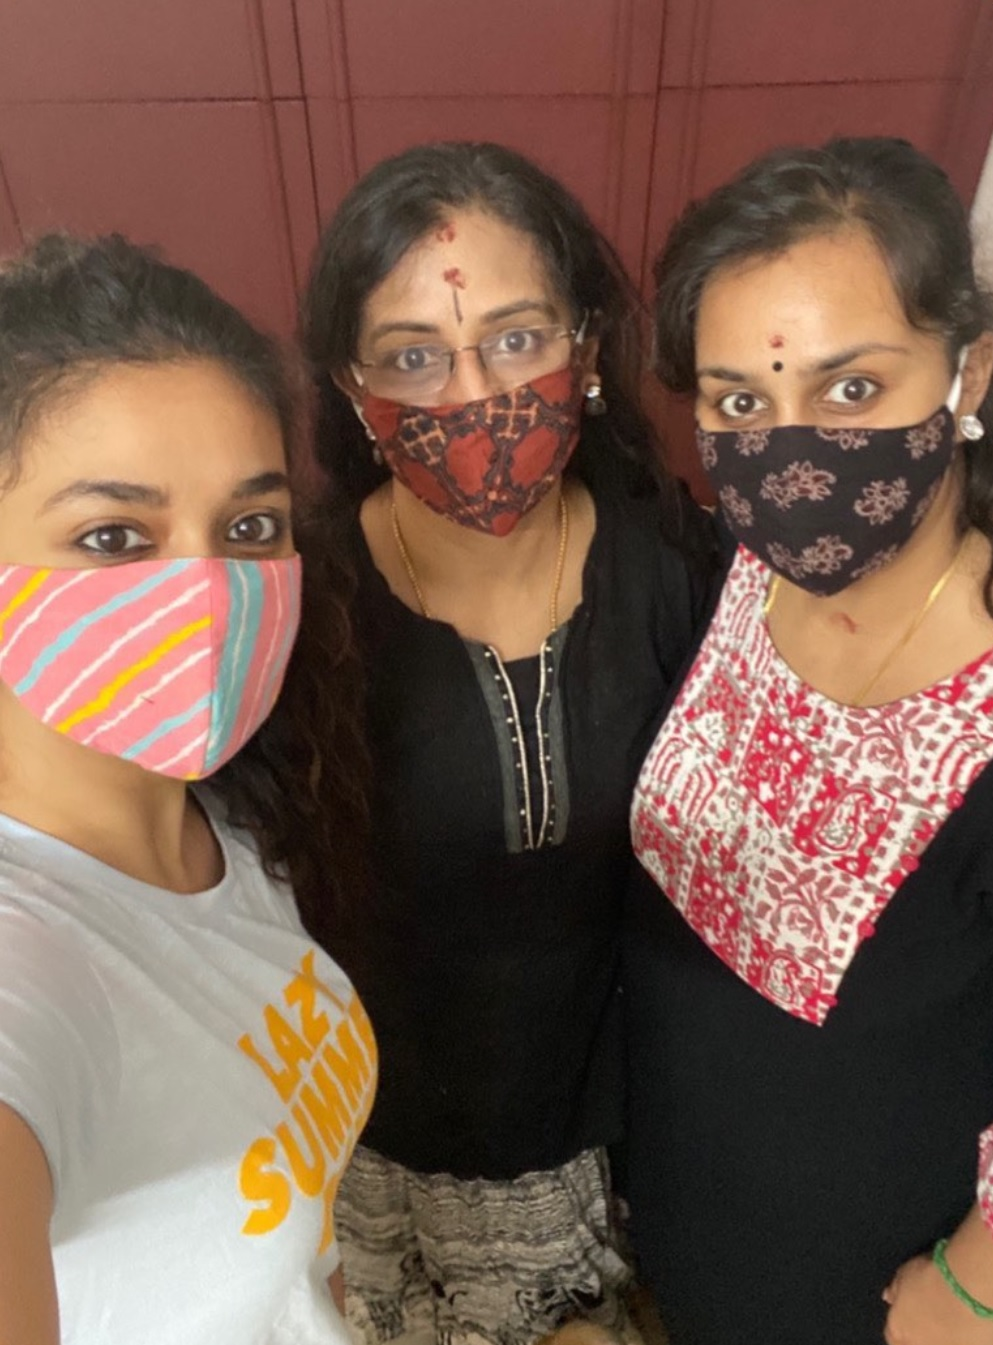 Keerthy Suresh with her Lovely Amma Menaka Suresh and Akka Revathy Suresh in the Mask Selfie